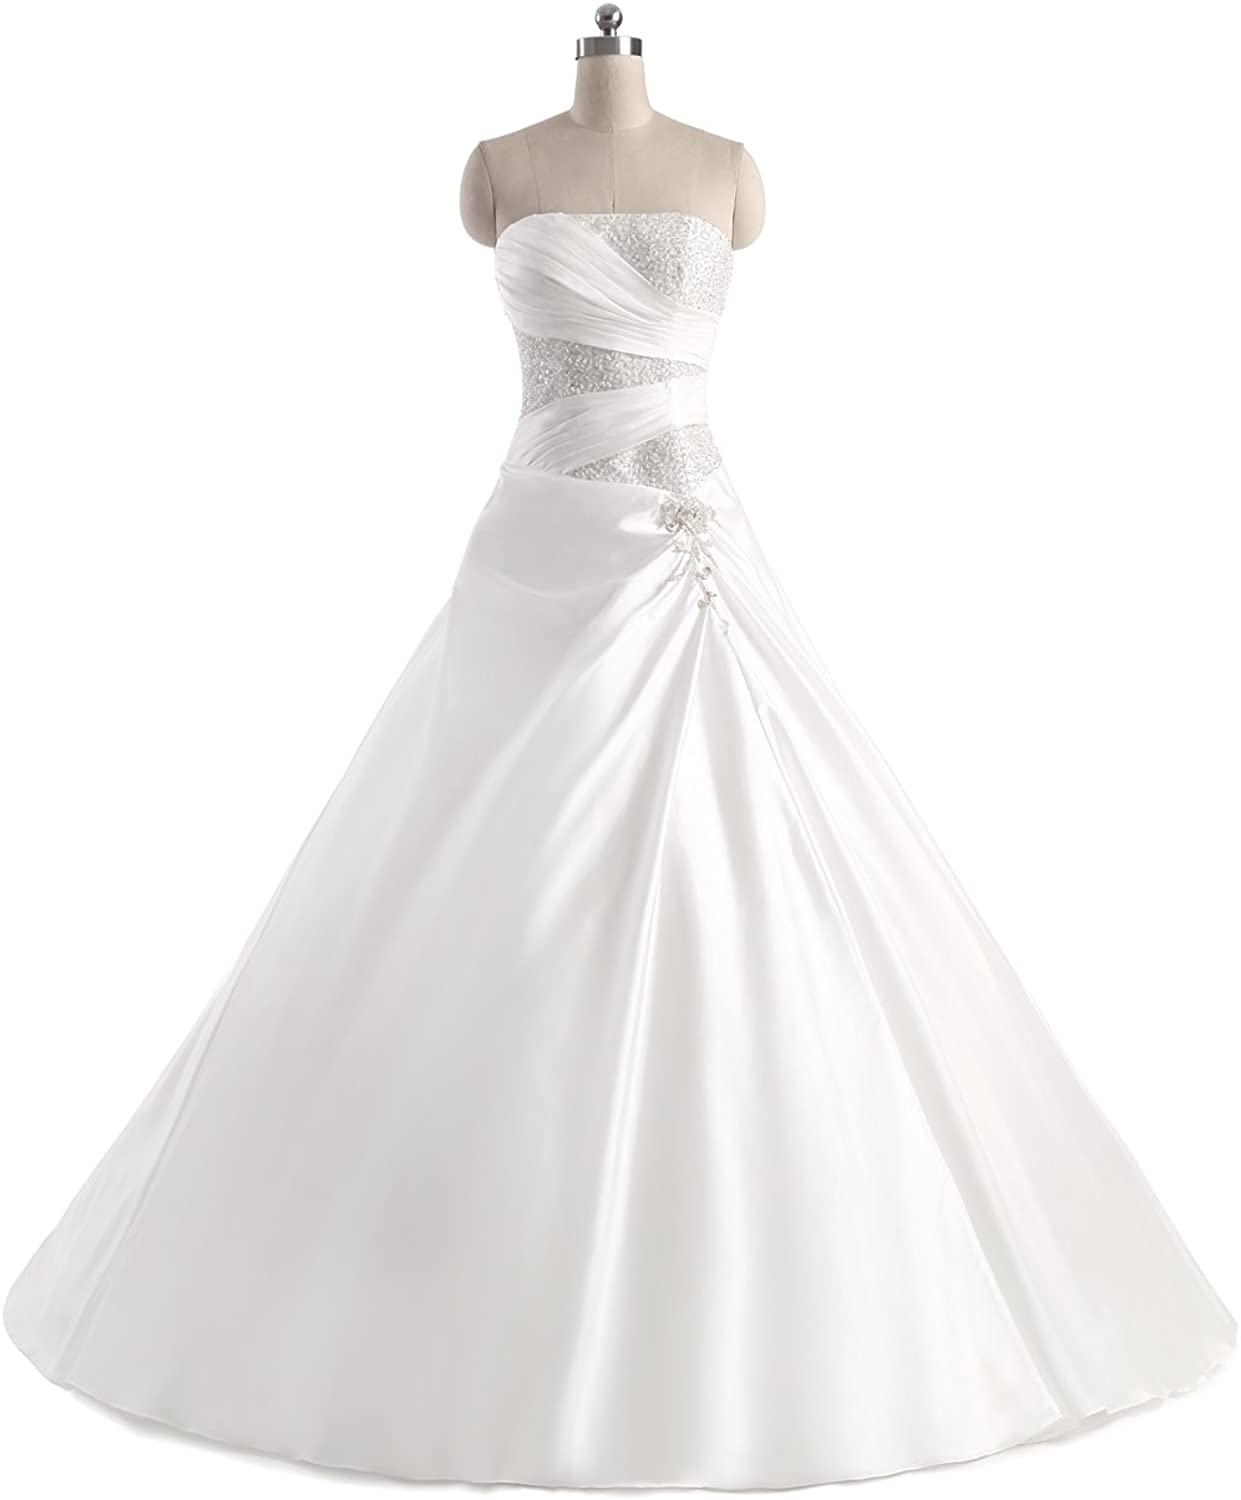 Epinkbridal Sweetheart Wedding Dress A Line Satin Sequin Beaded Bridal Gowns